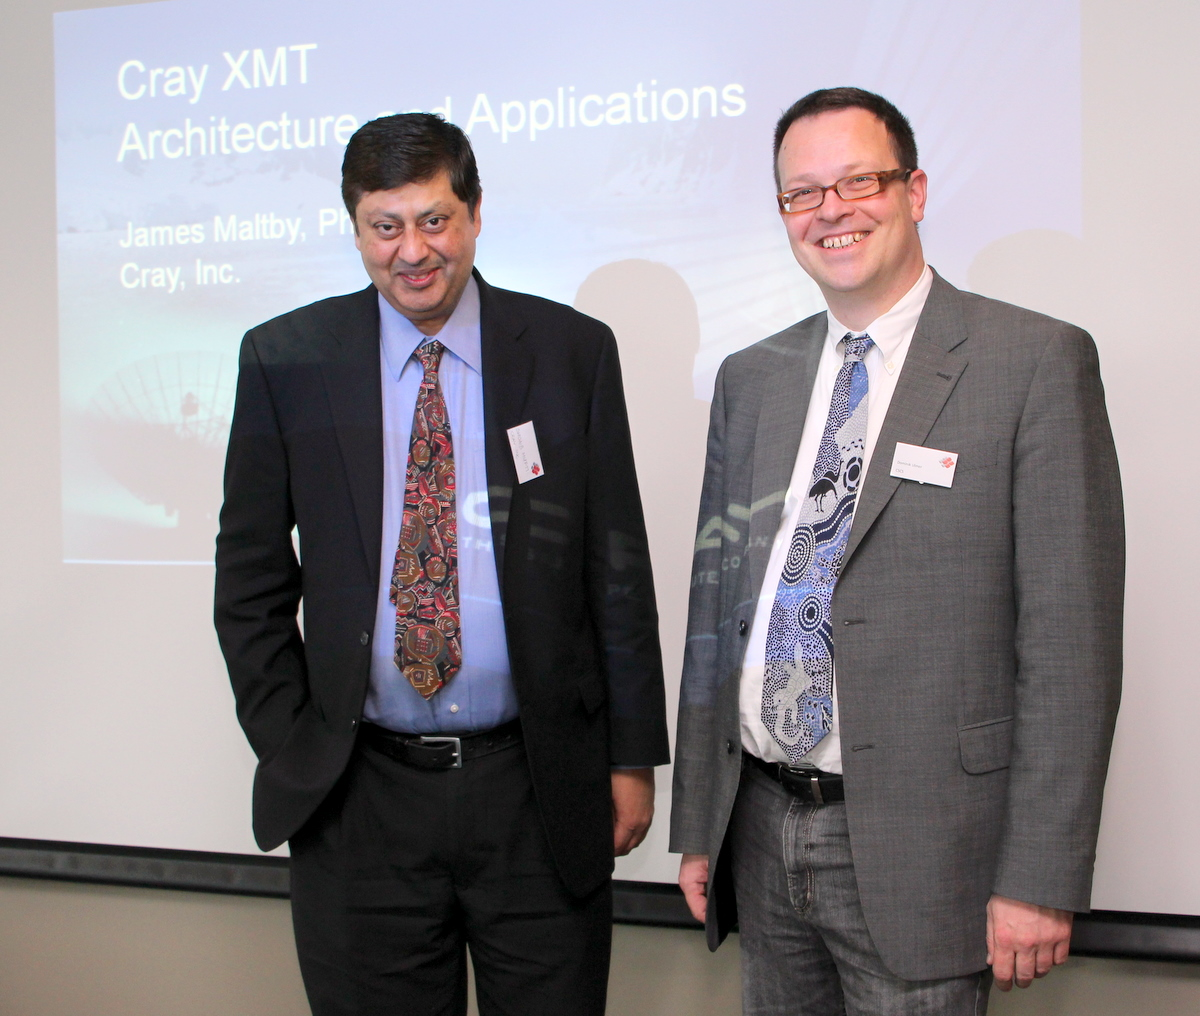 Mufti (Cray) and Ulmer (CSCS)